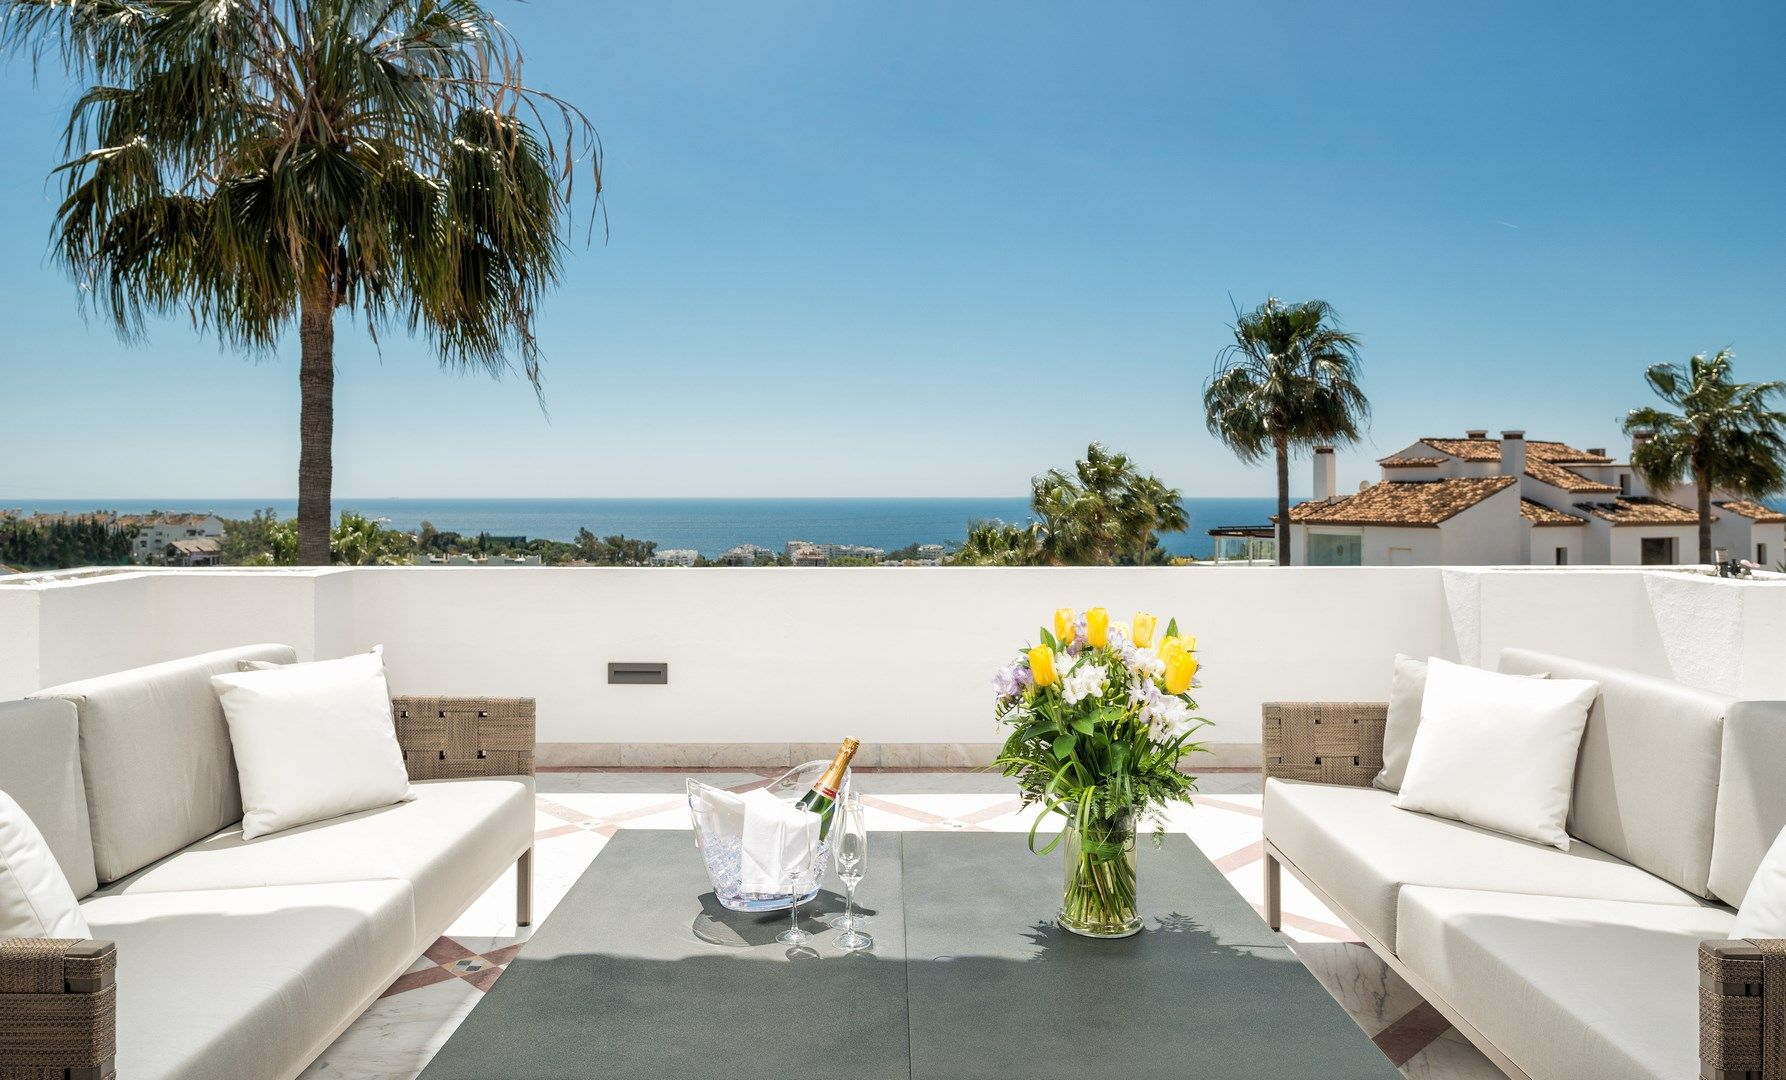 Exclusive double apartment for sale in Monte Paraiso Country Club in Marbella